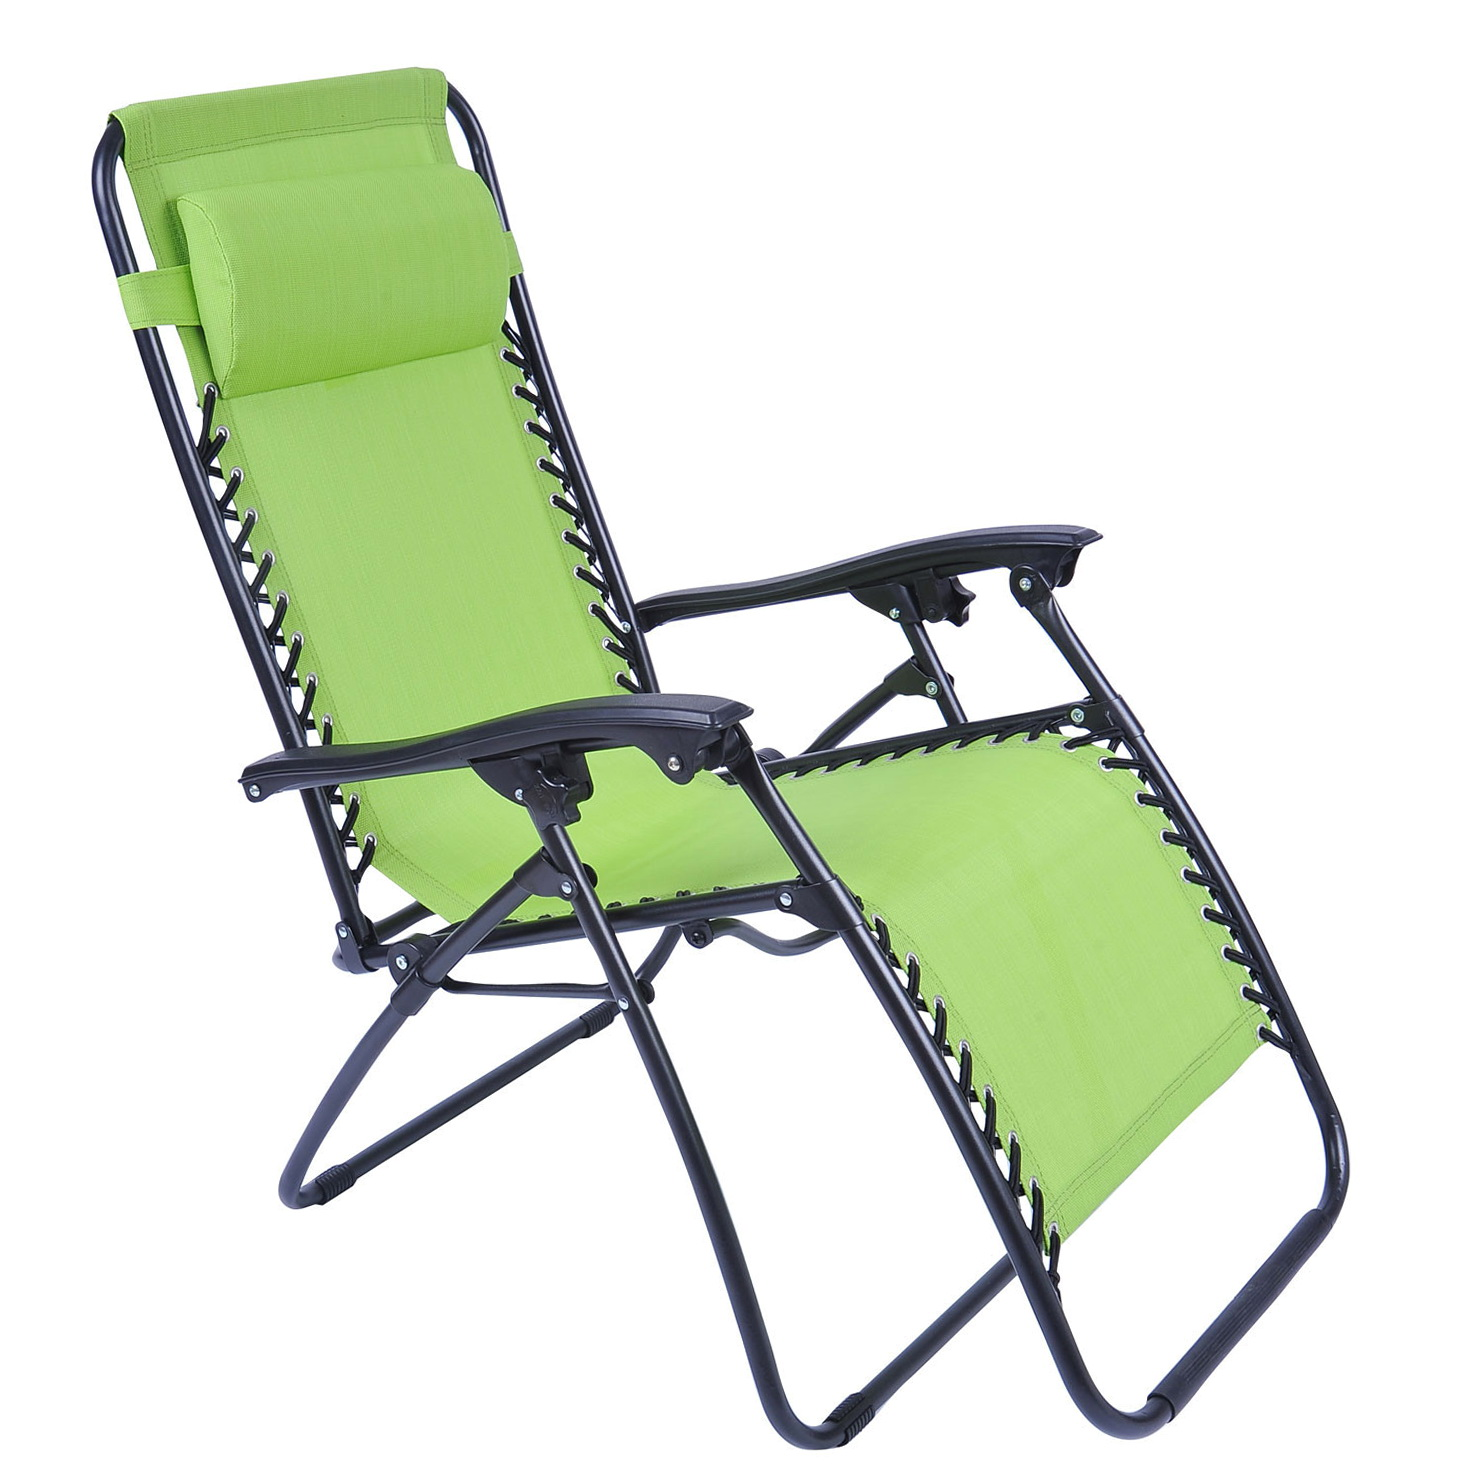 folding loveseat lawn chair swing newborn chaise lounge patio outdoor pool beach